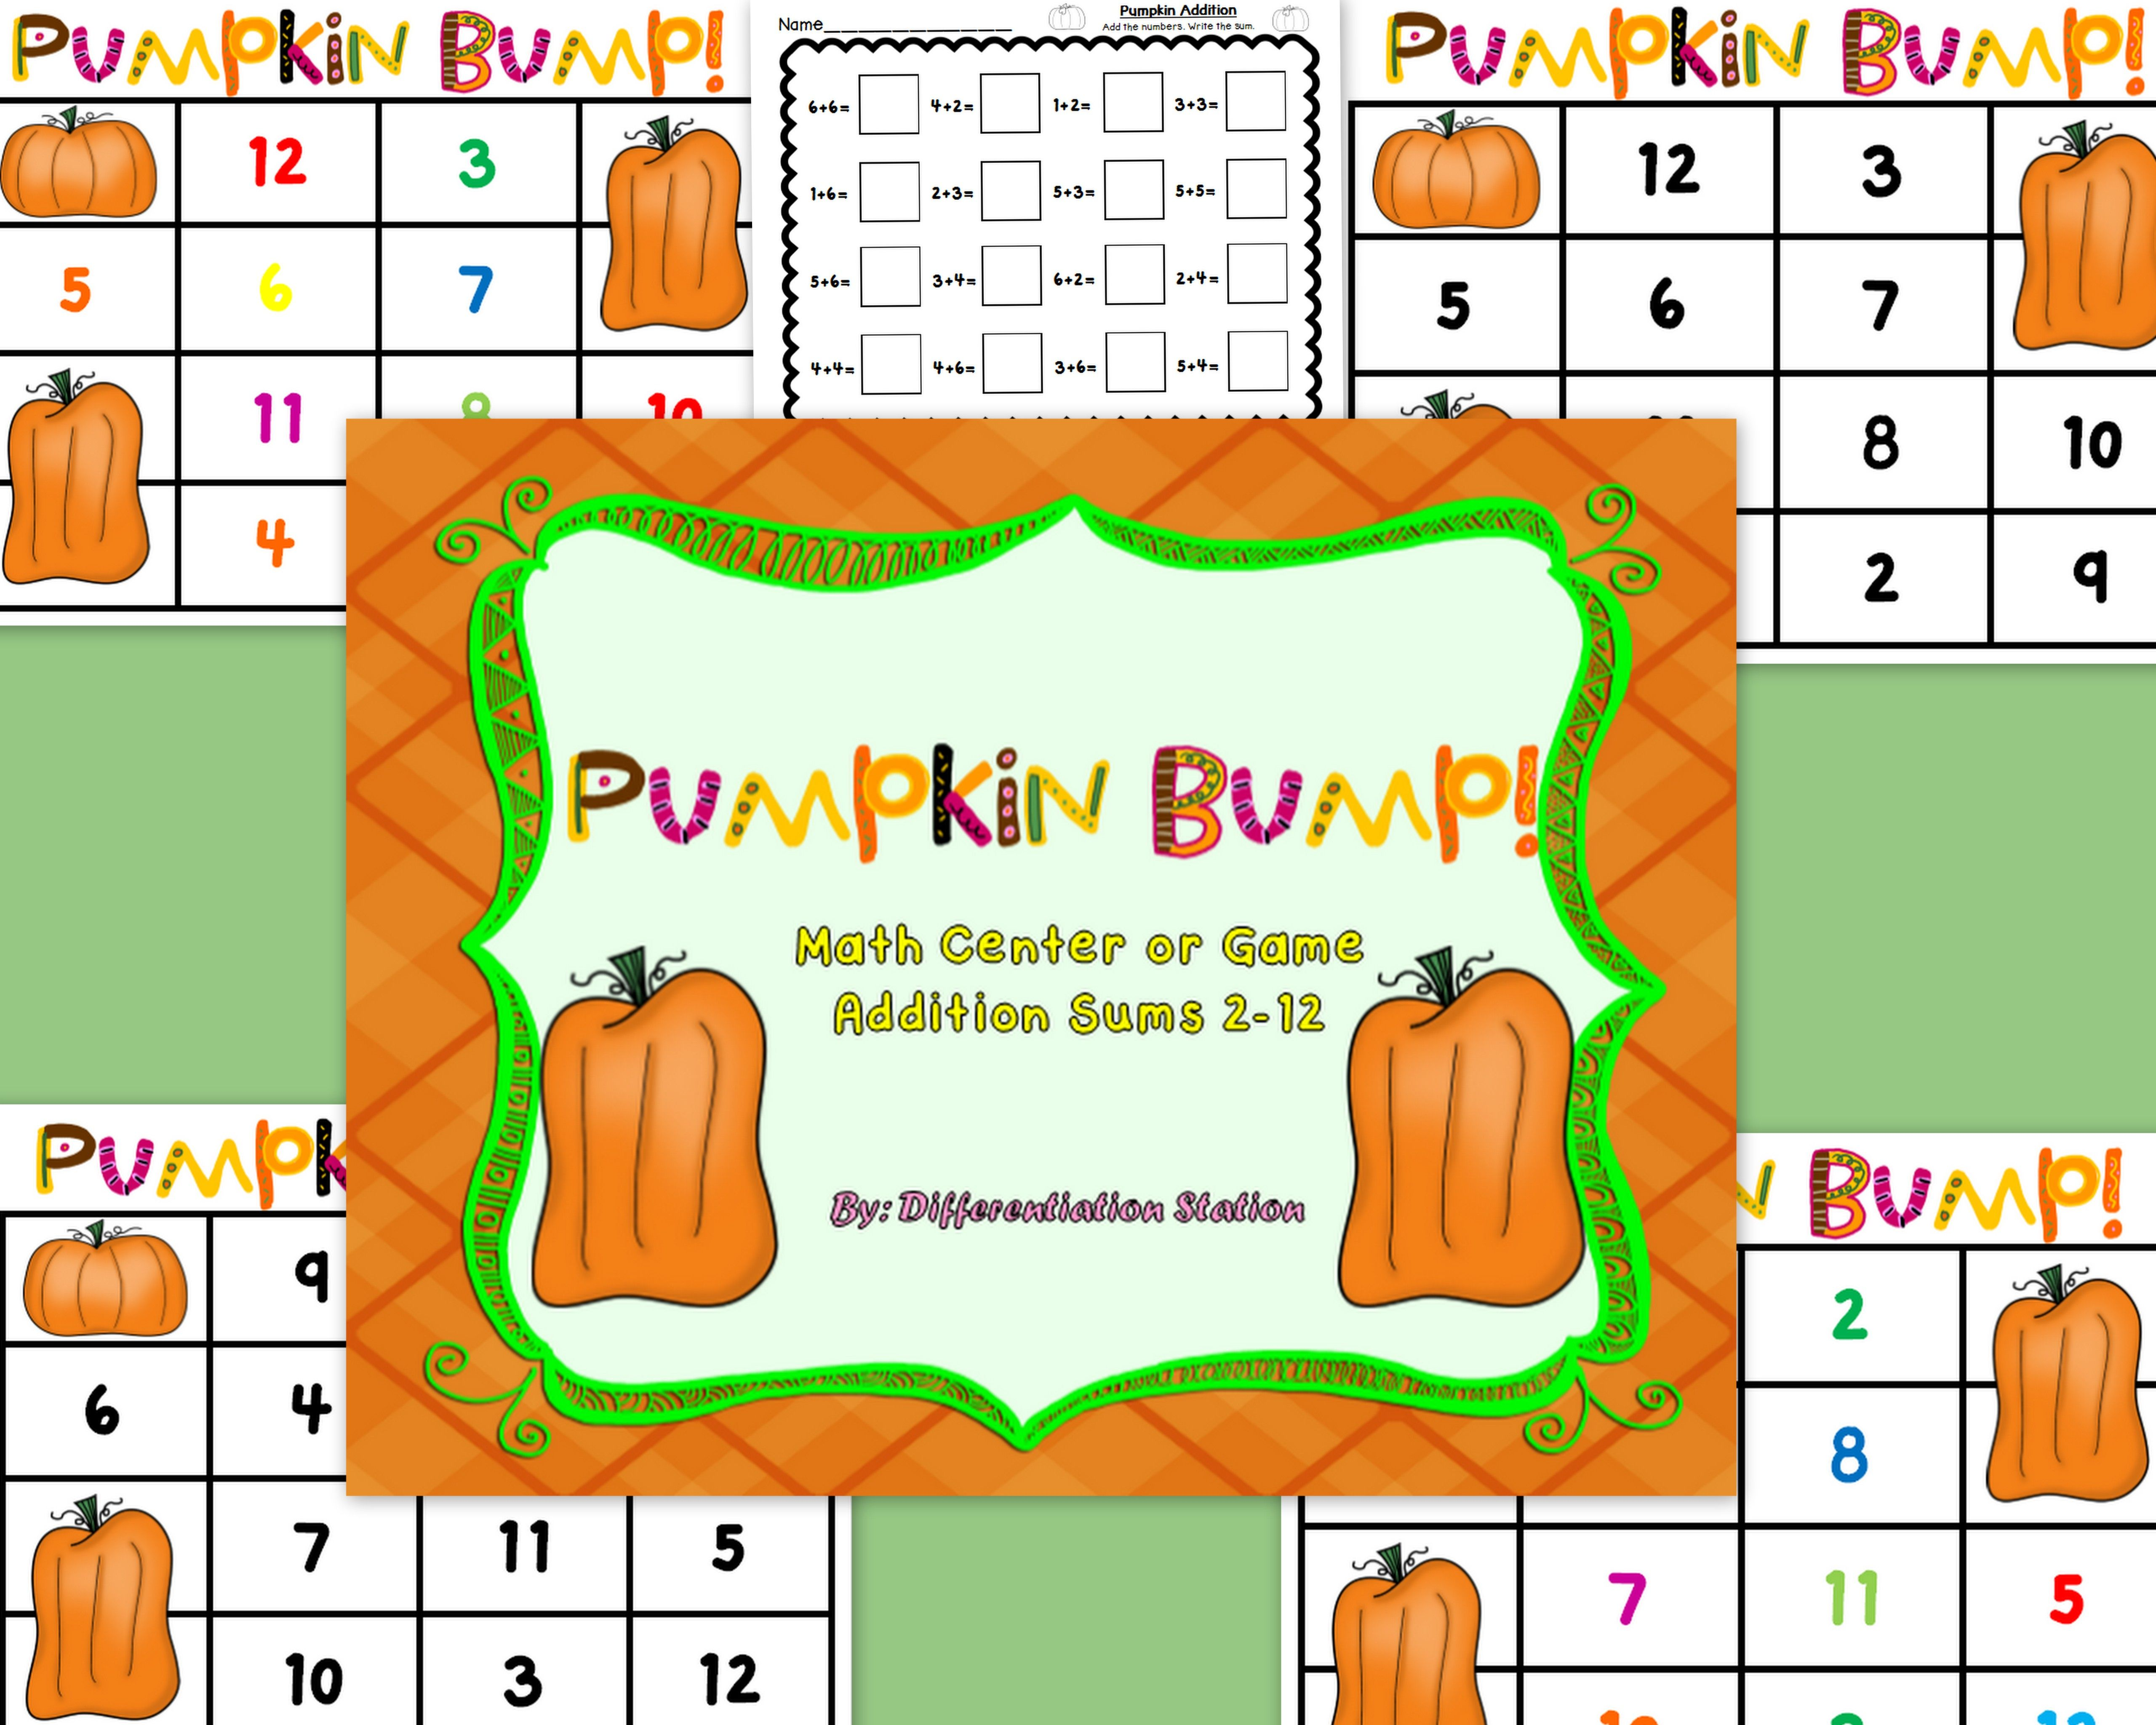 Free Pumpkin Bump A Pumpkin Fall Themed Math Center Game And Printable Addition 2 12